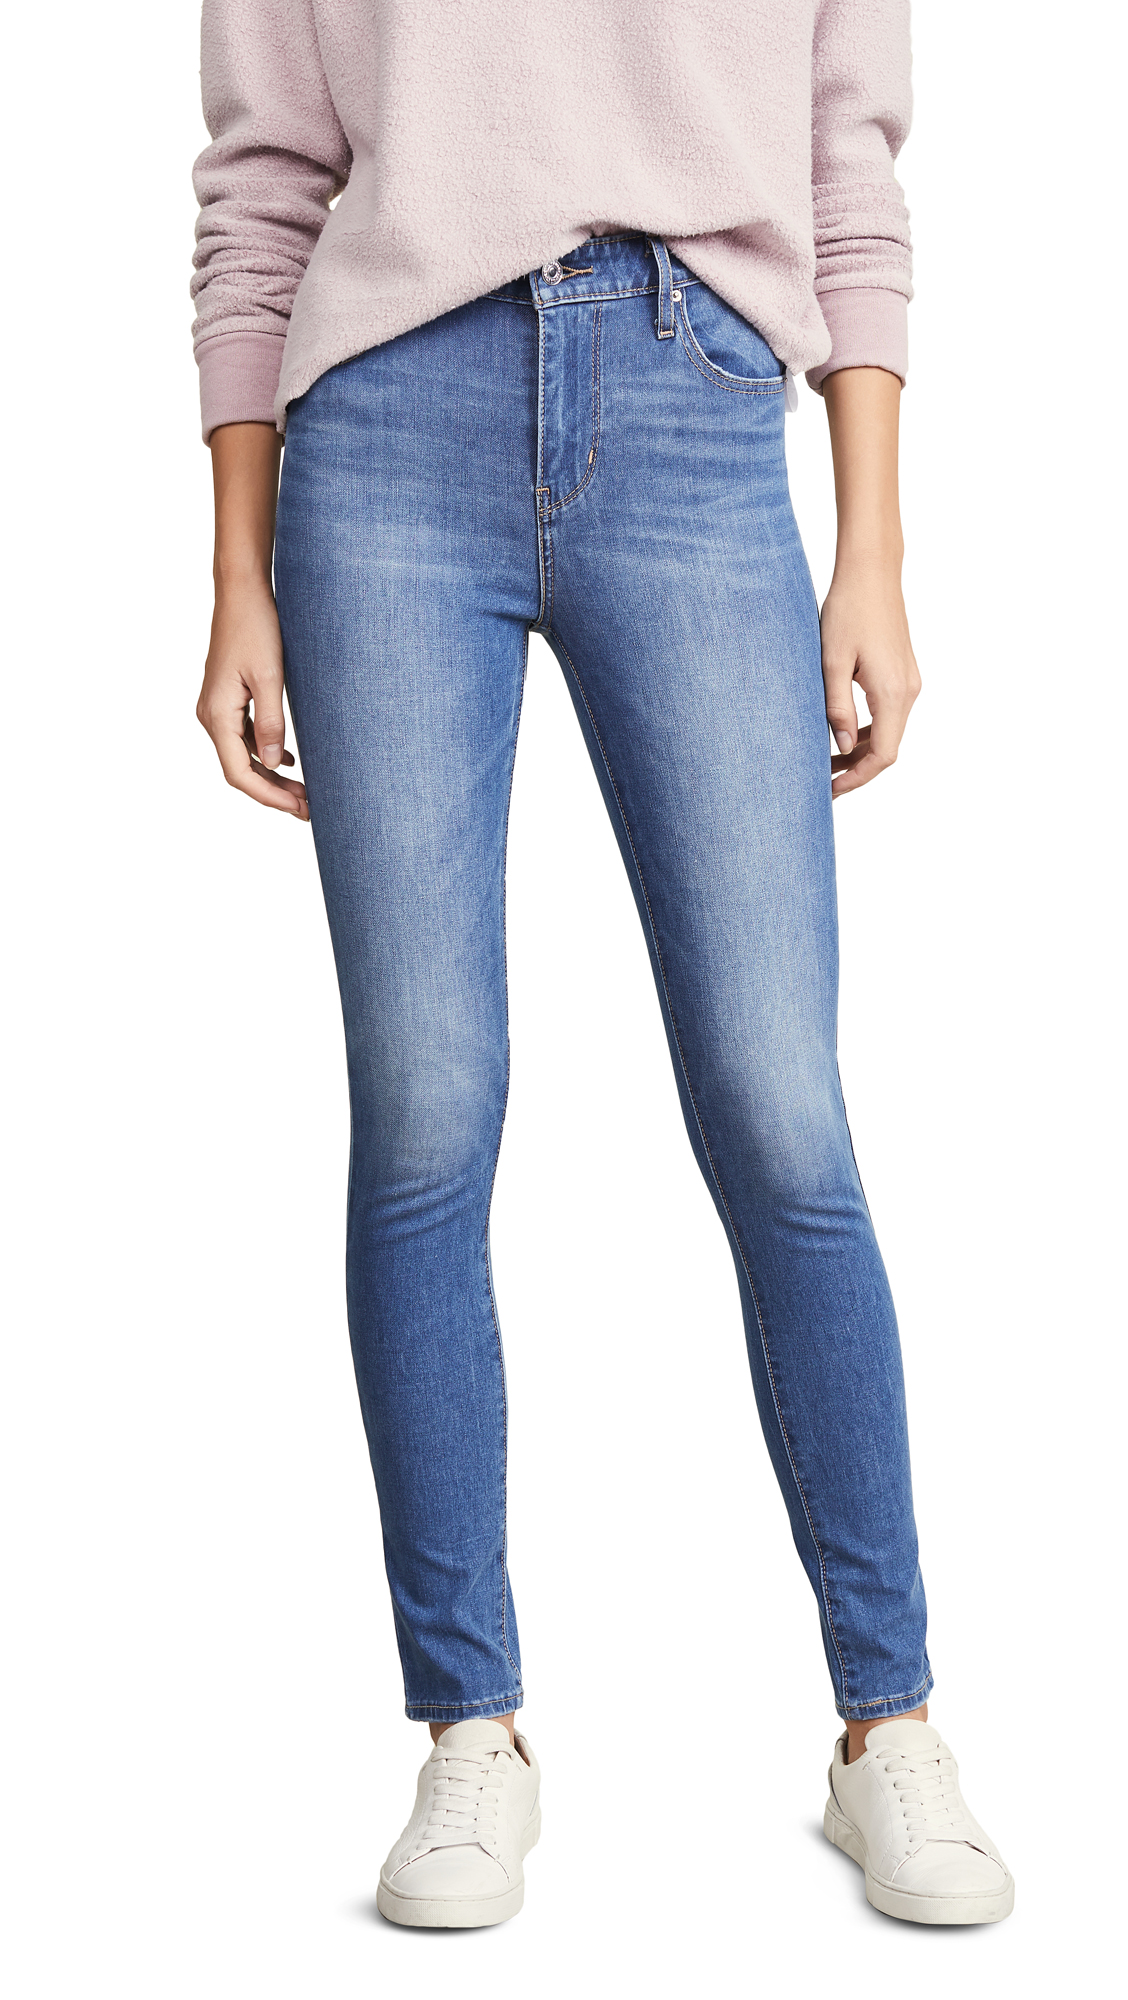 Levis 721 High Rise Skinny Jeans - Lol